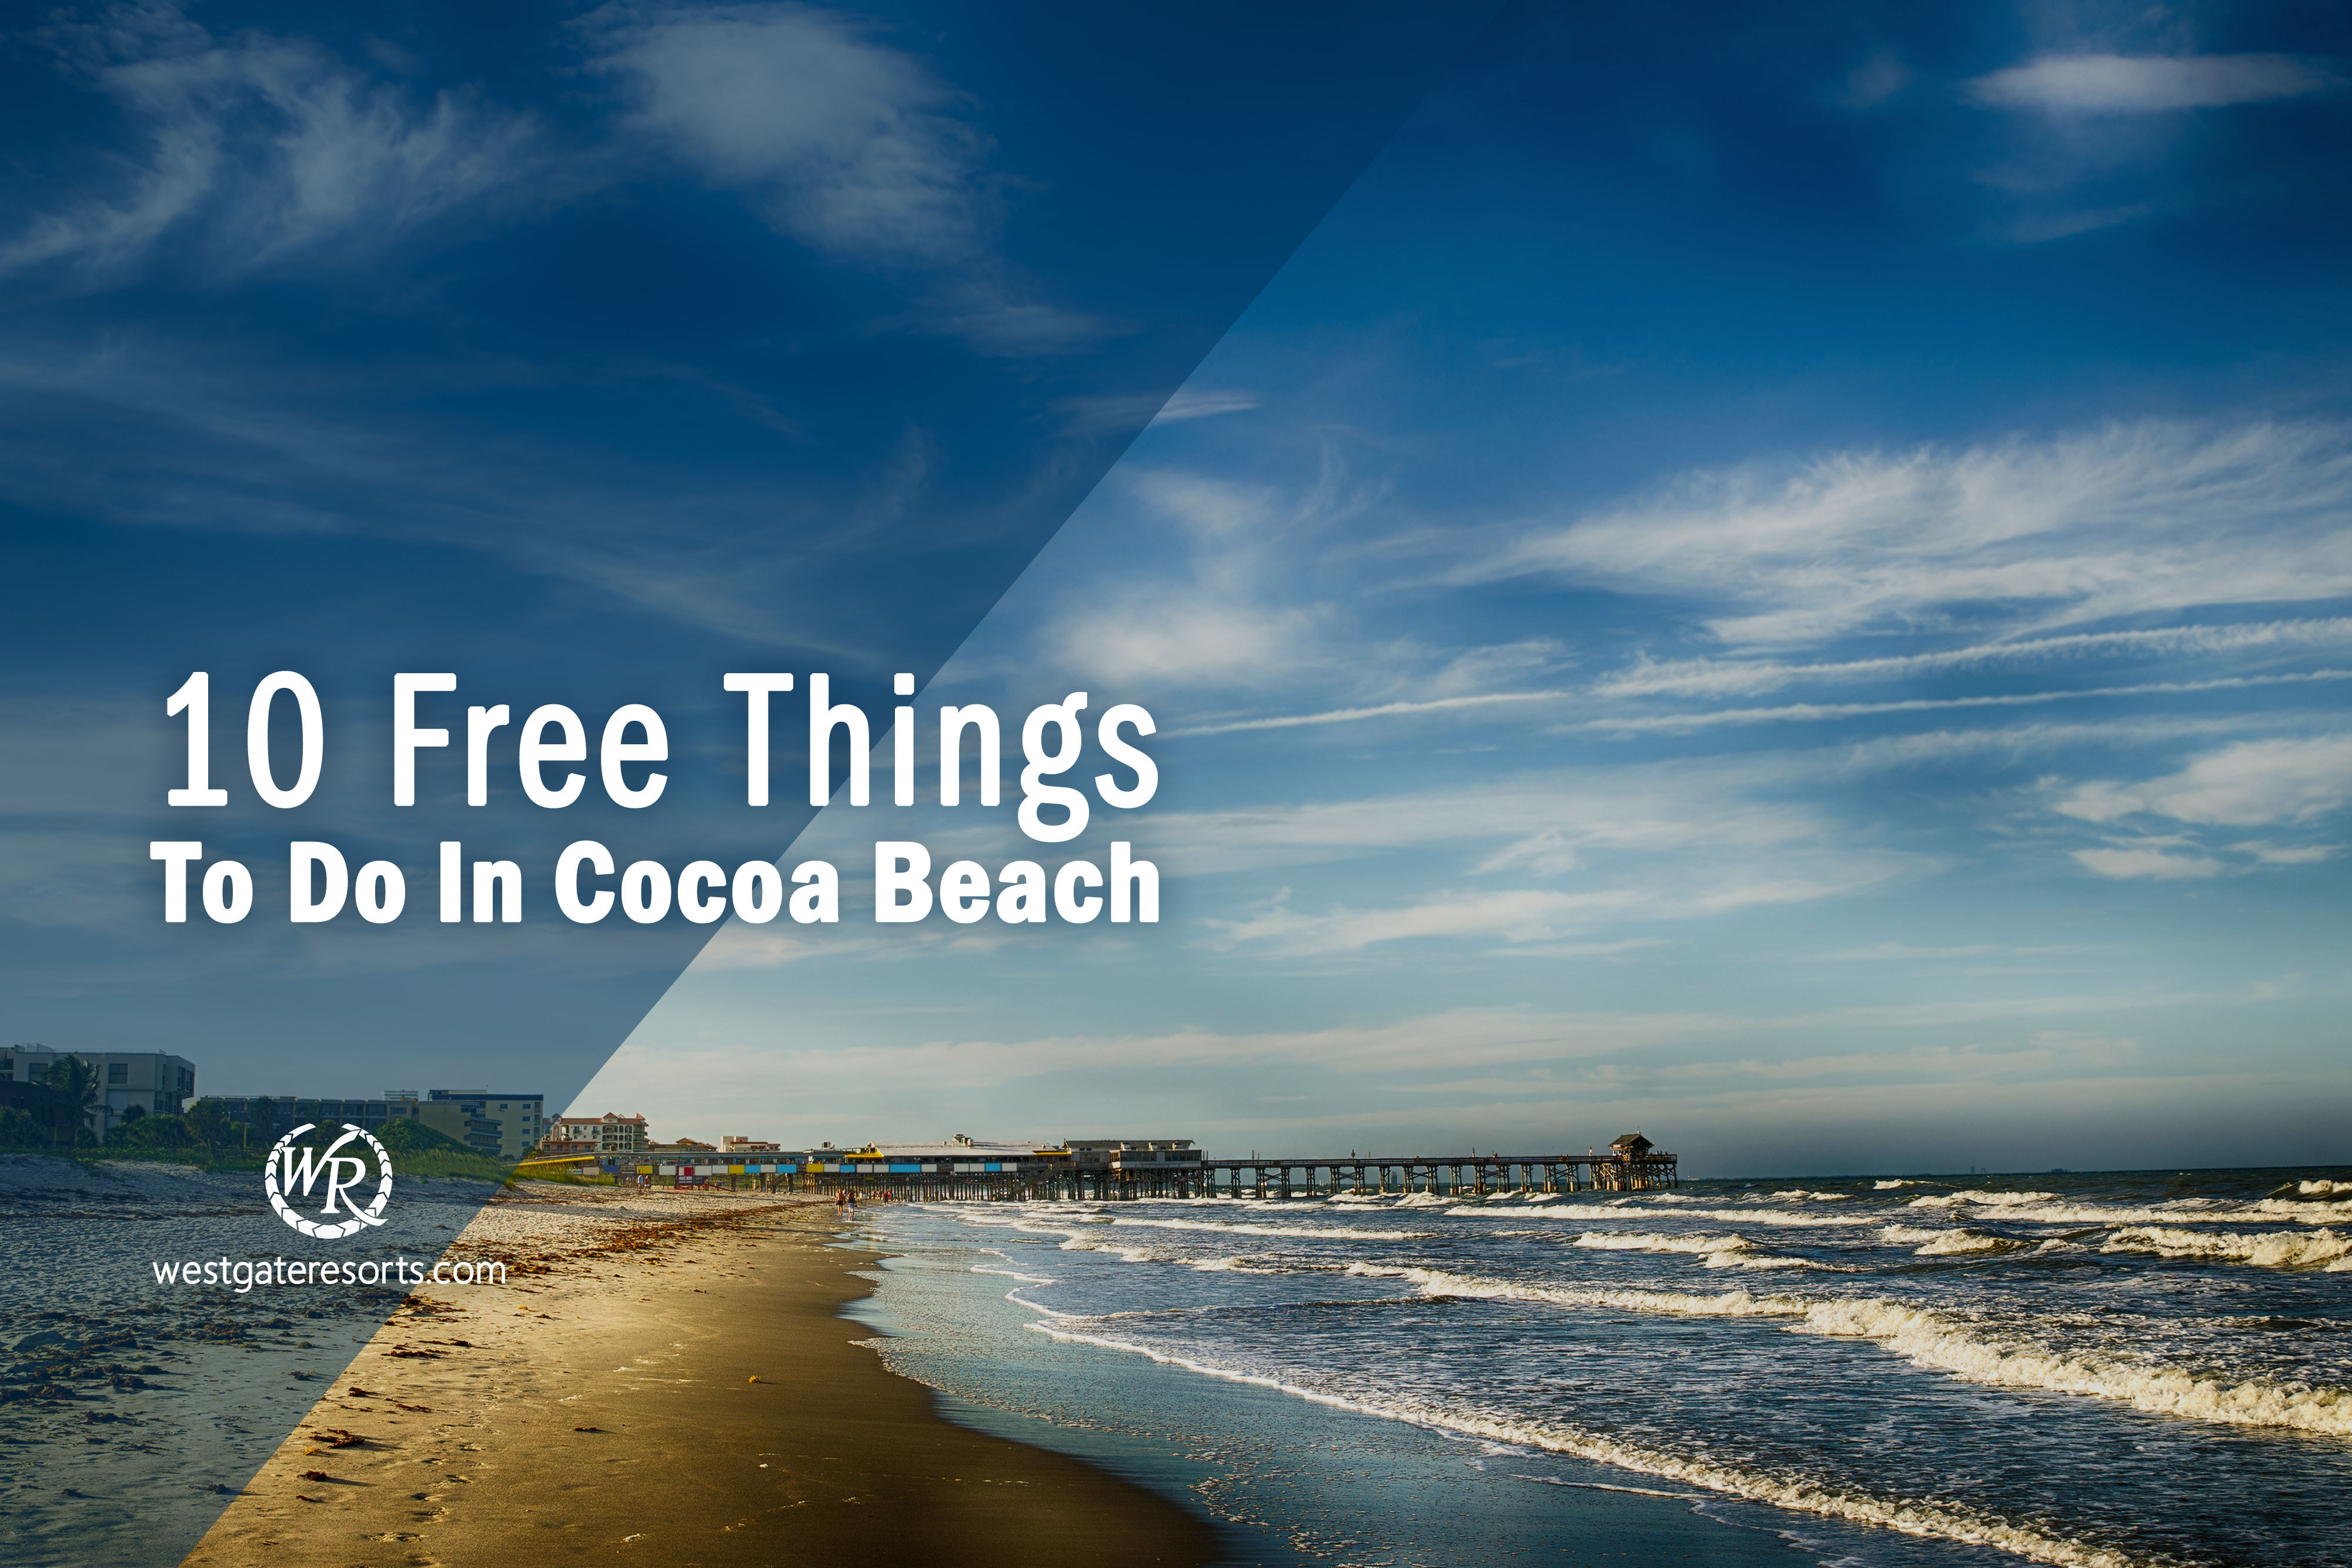 10 Free Things to do in Cocoa Beach